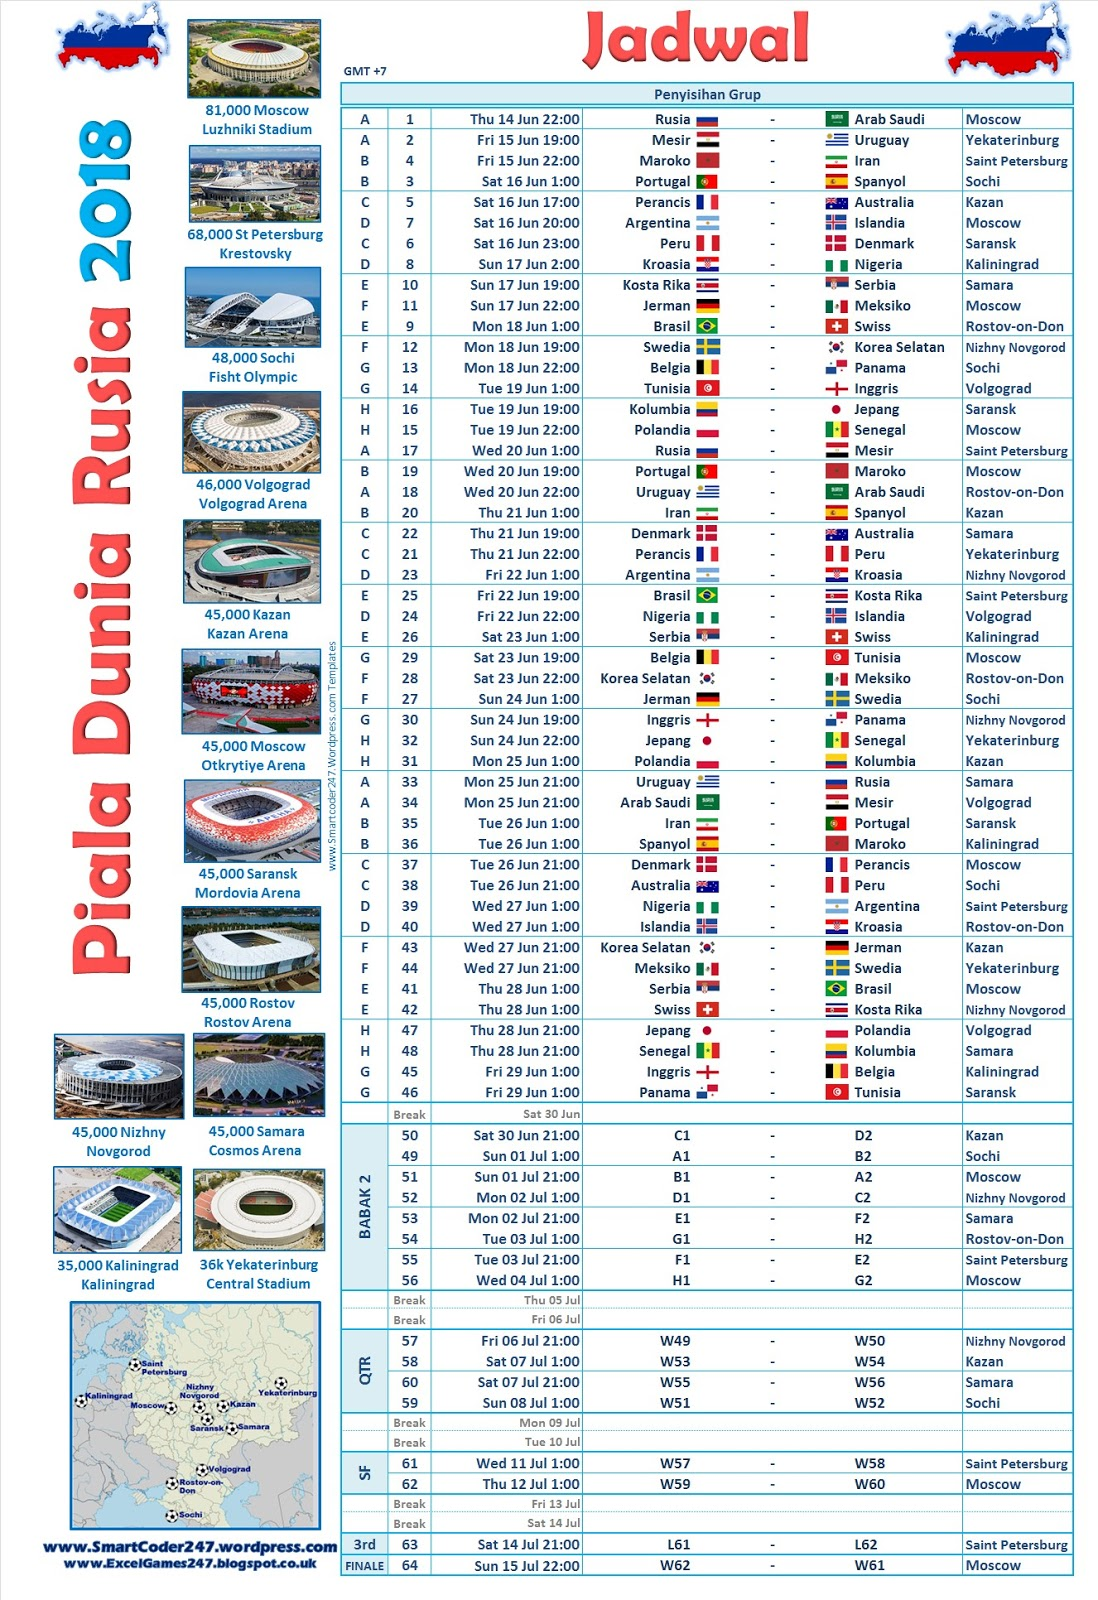 Smartcoder 247 - Russia 2018 World Cup Football Excel ...